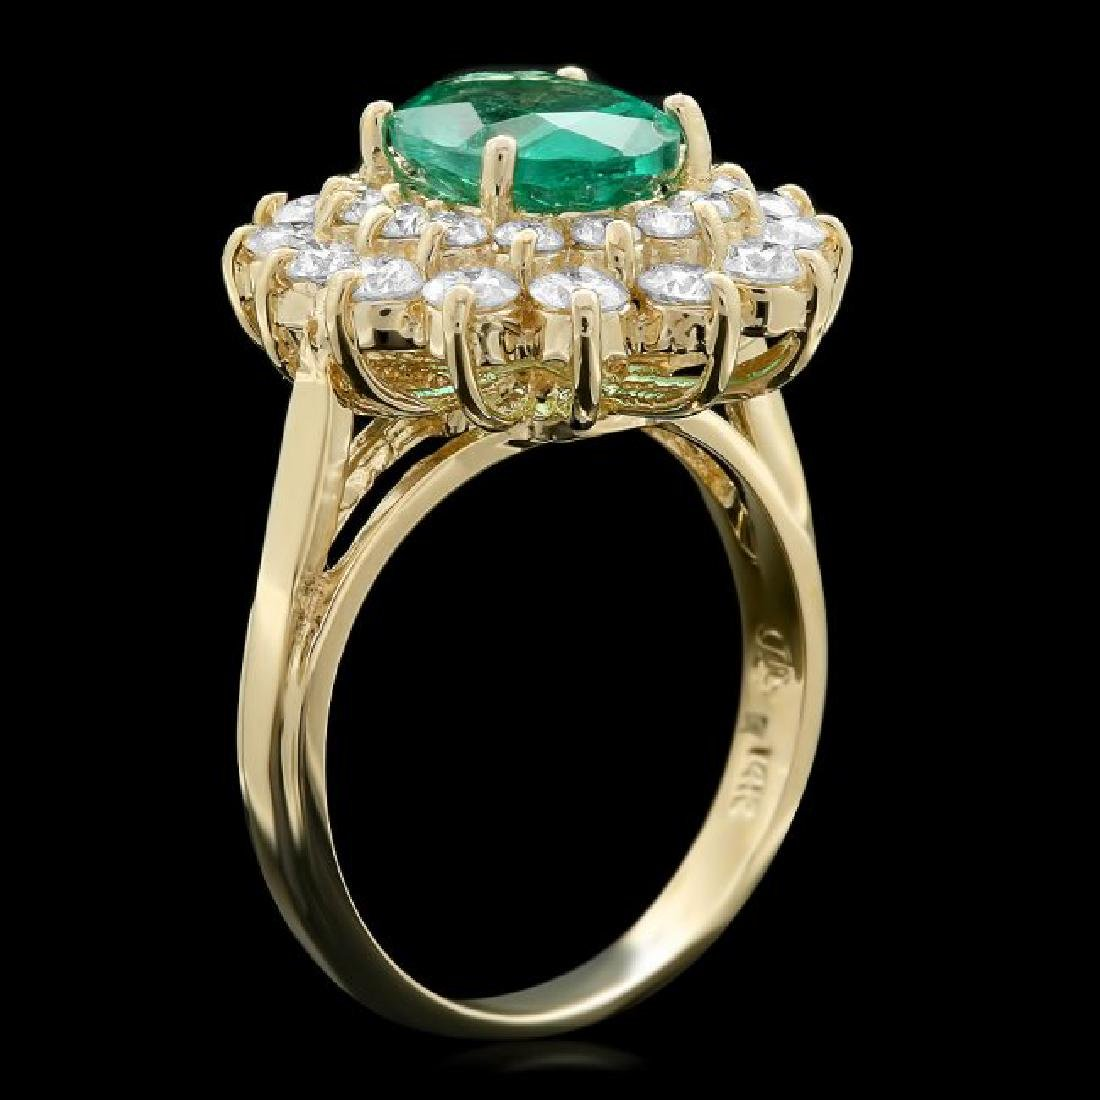 14k Gold 1.50ct Emerald 1.35ct Diamond Ring - 2